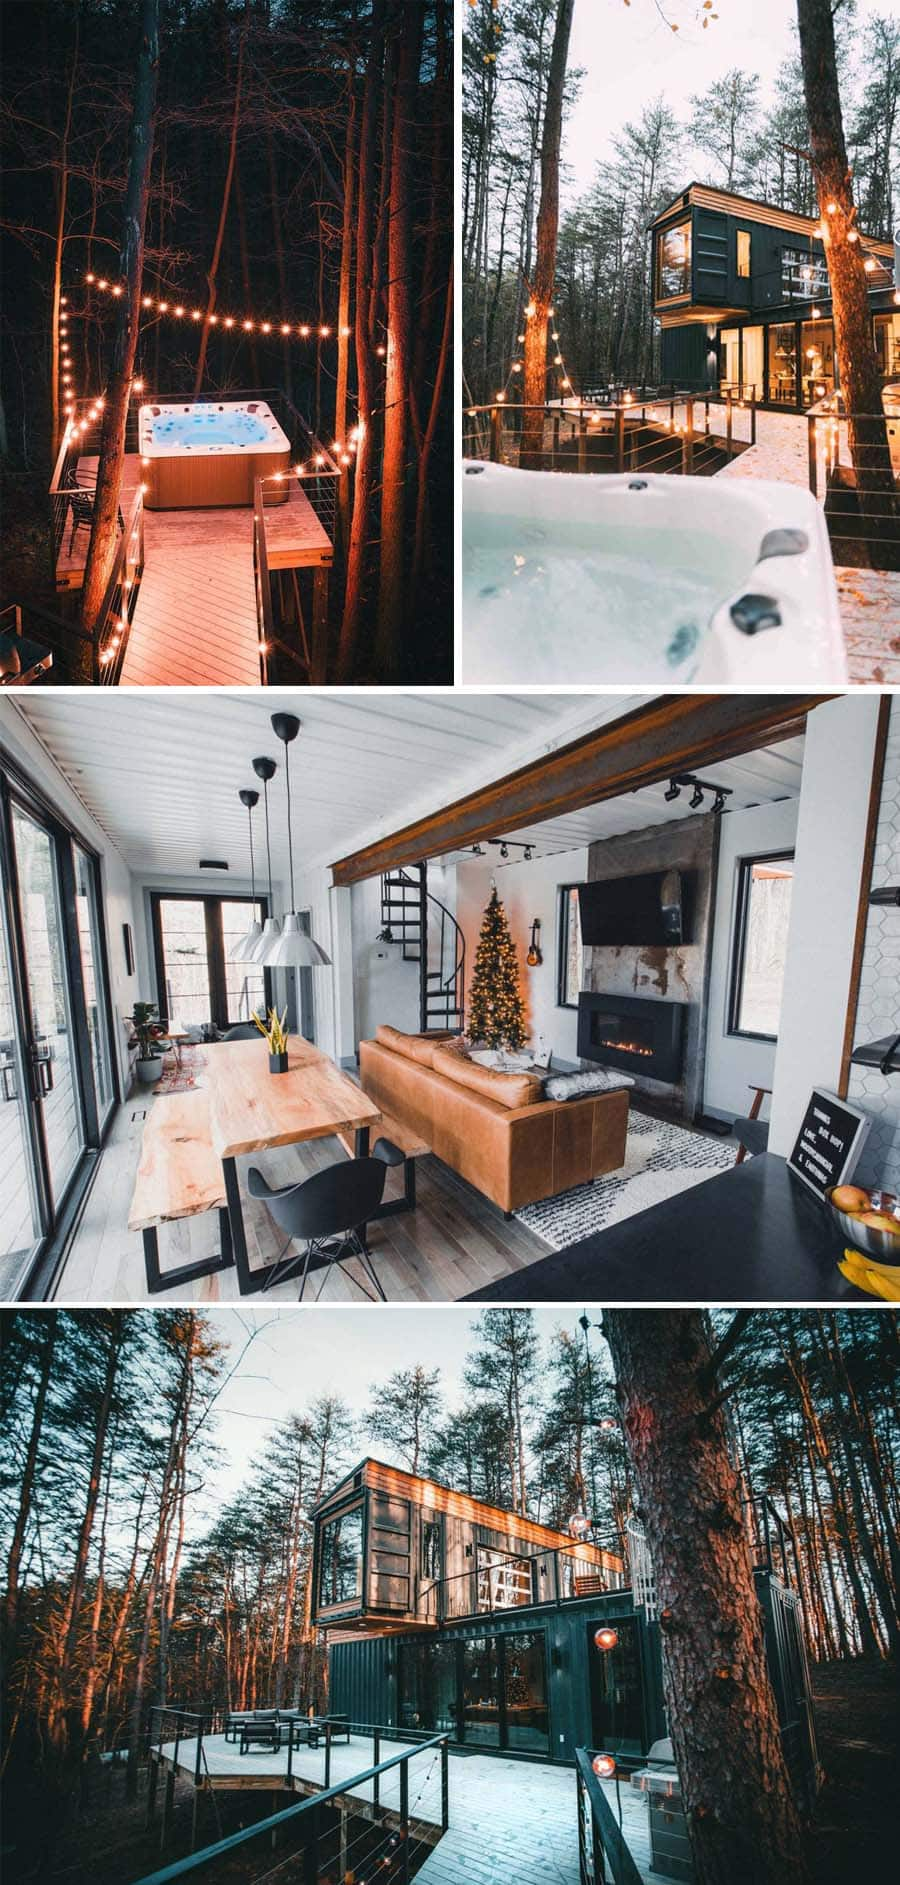 Ohio shipping container Airbnb home with string lights